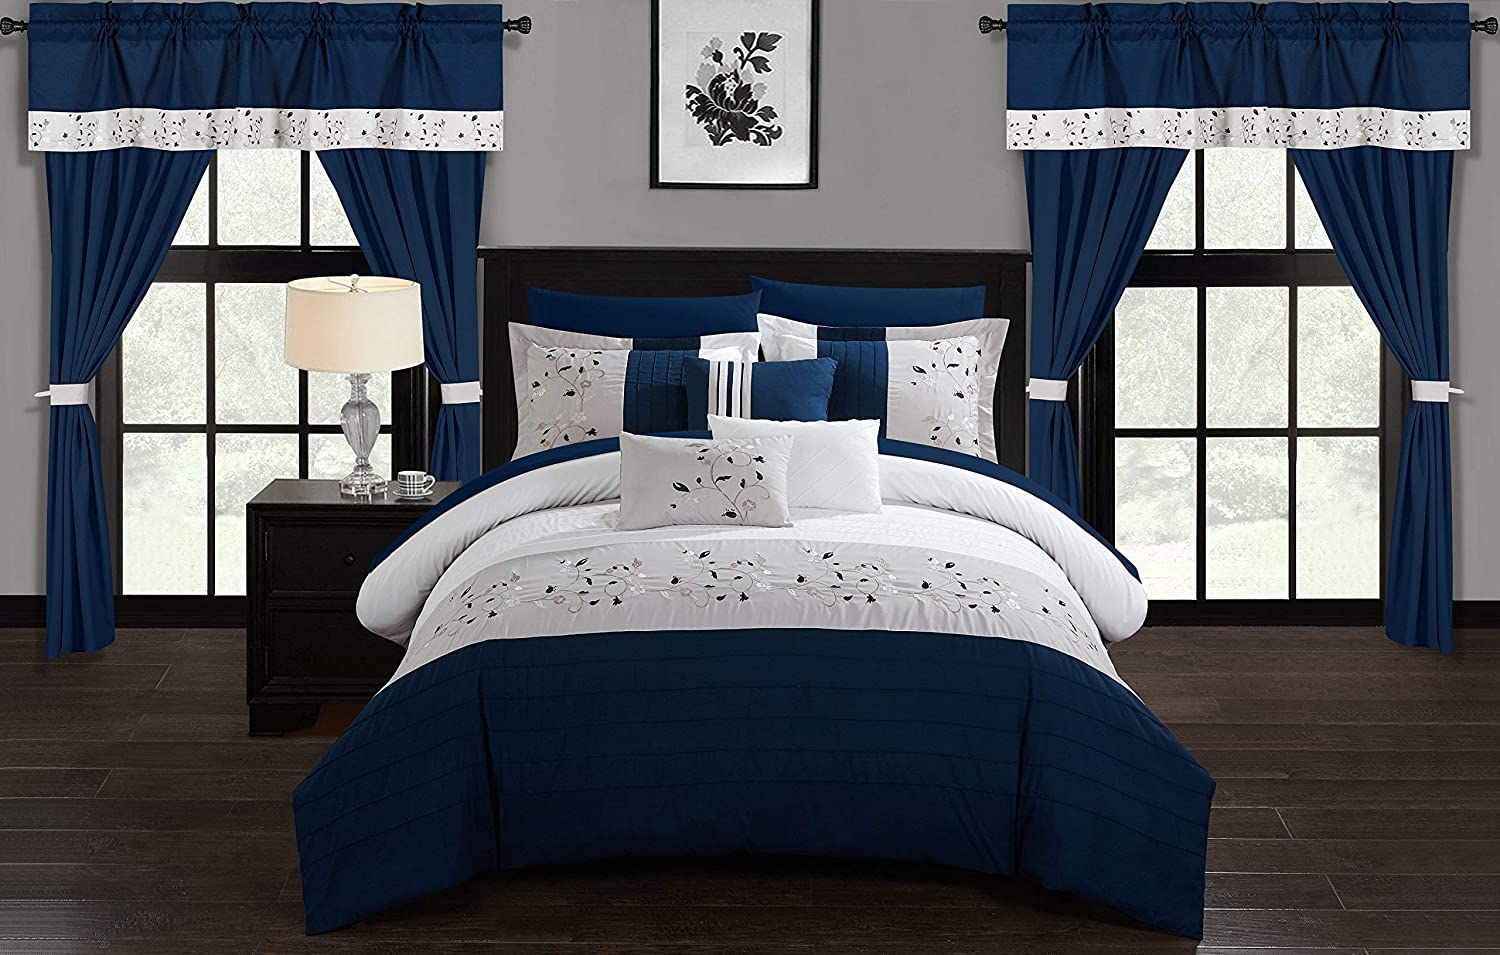 Chic Home Sonita 20 Piece Comforter Set Color Block Floral Embroidered Bag Bedding-Sheets, King, Navy